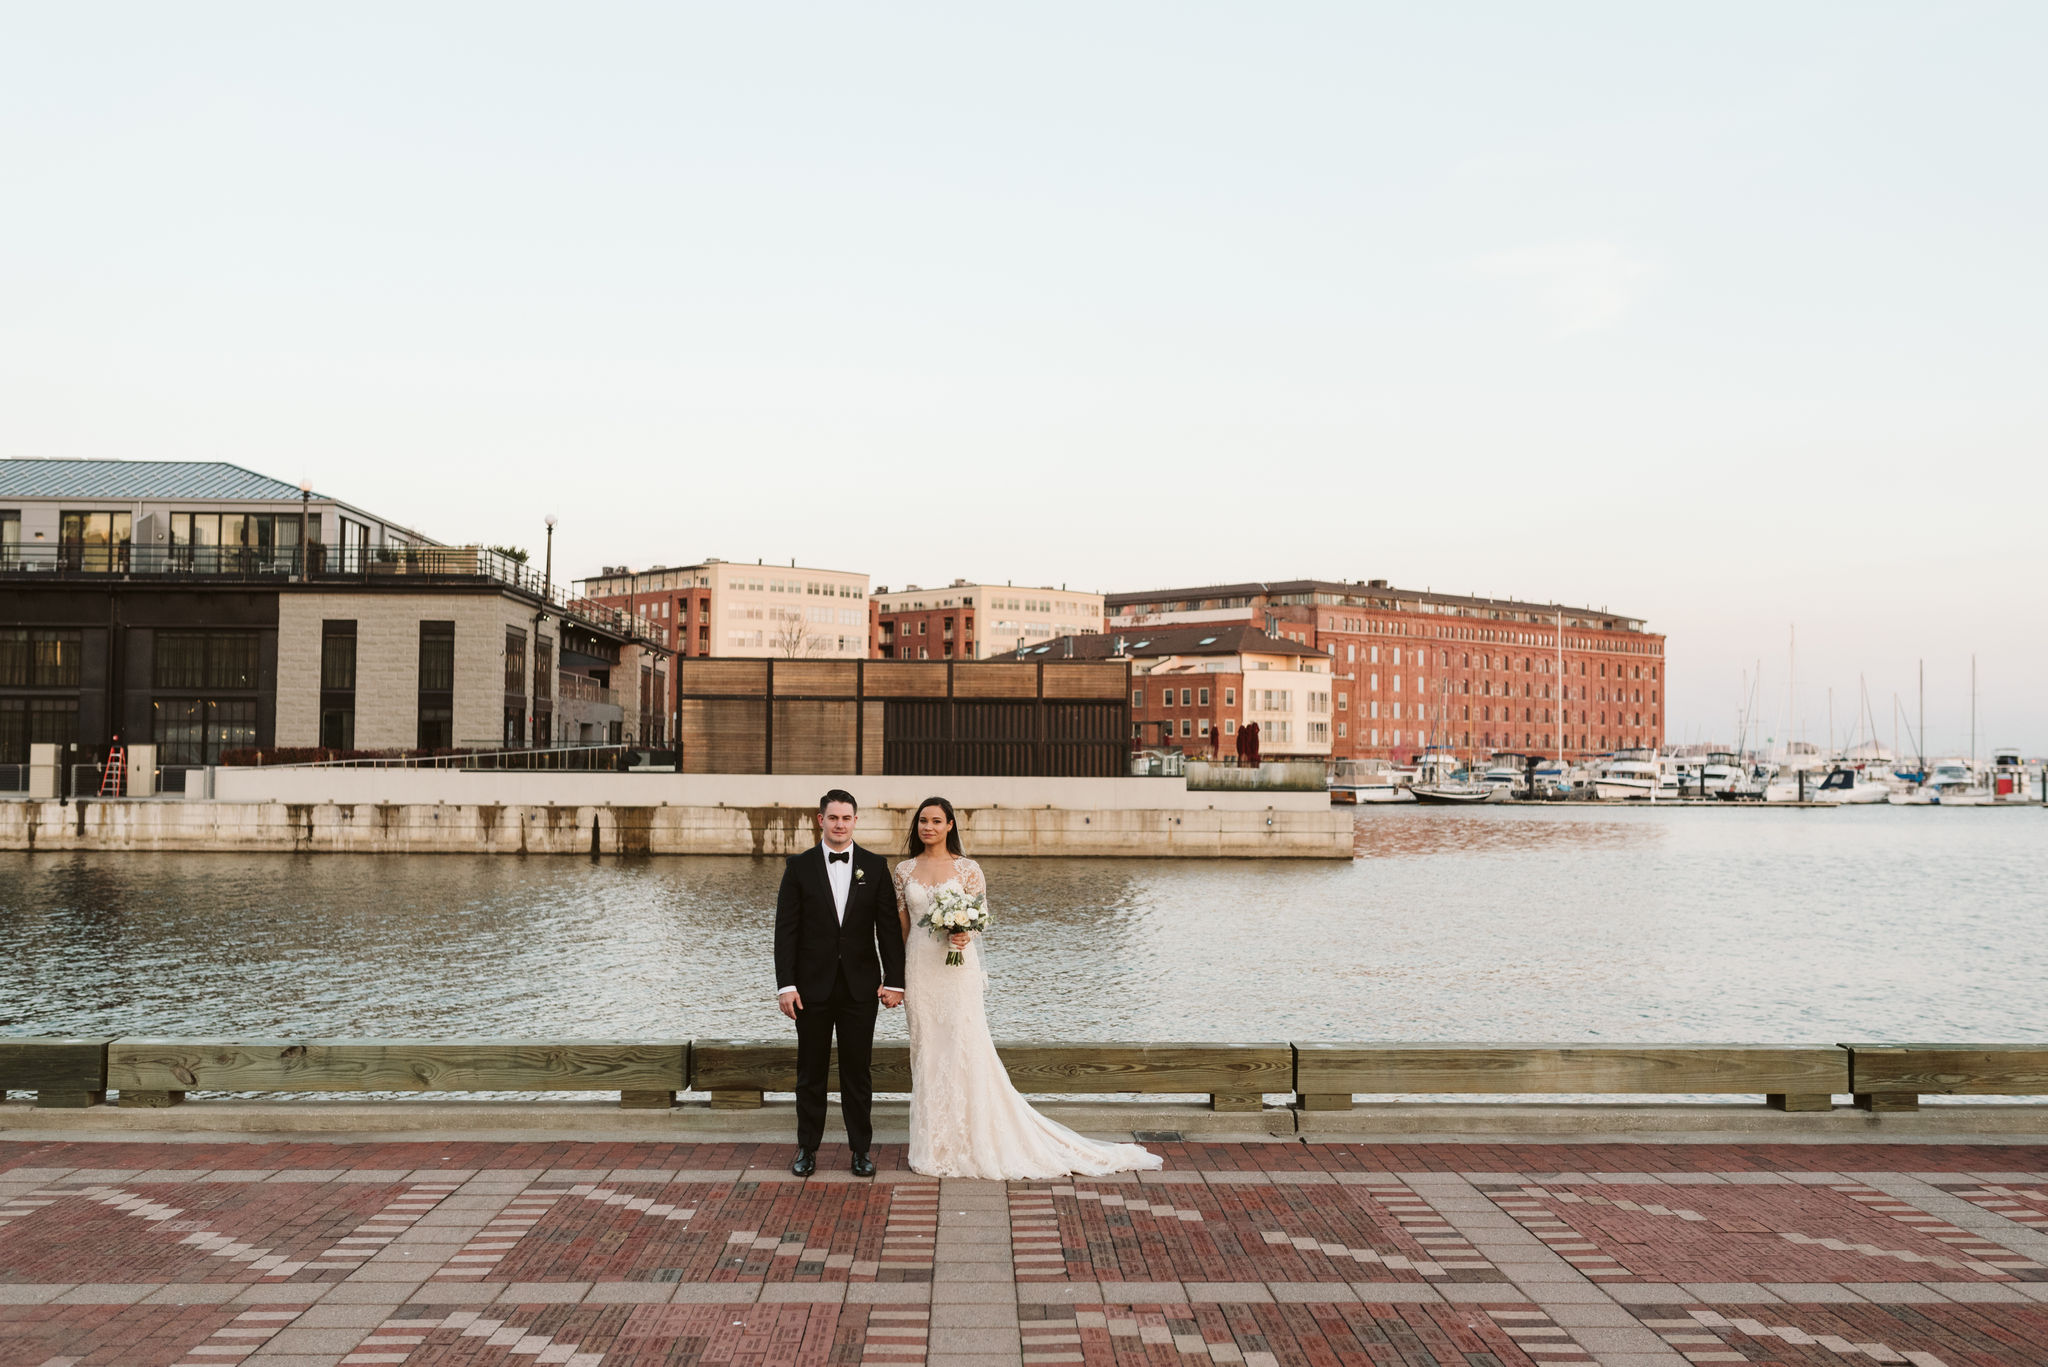 Laura+Patrick'sWedding-87.jpg